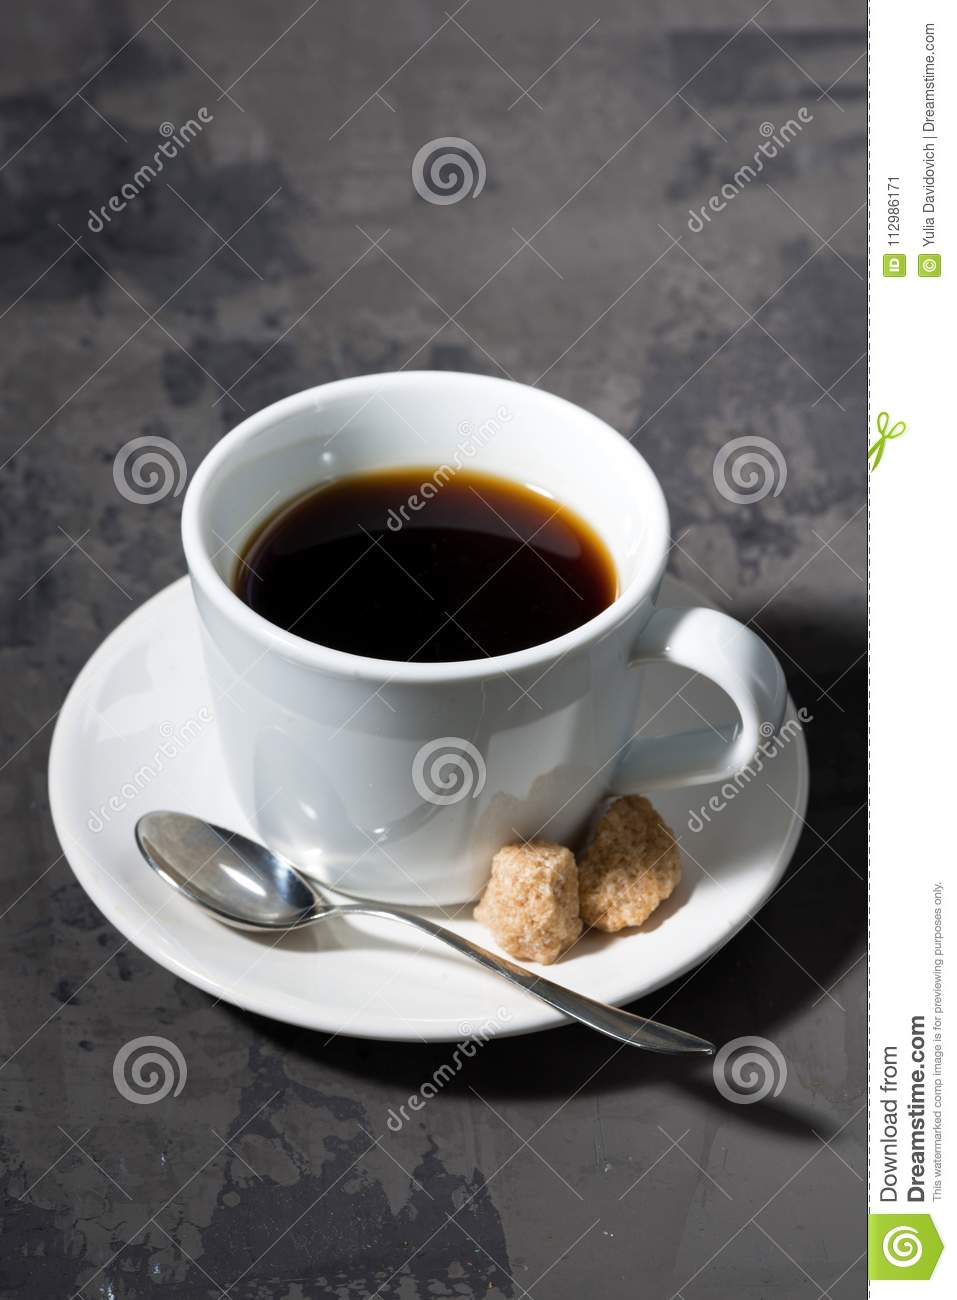 Cup of black coffee on a dark background, vertical